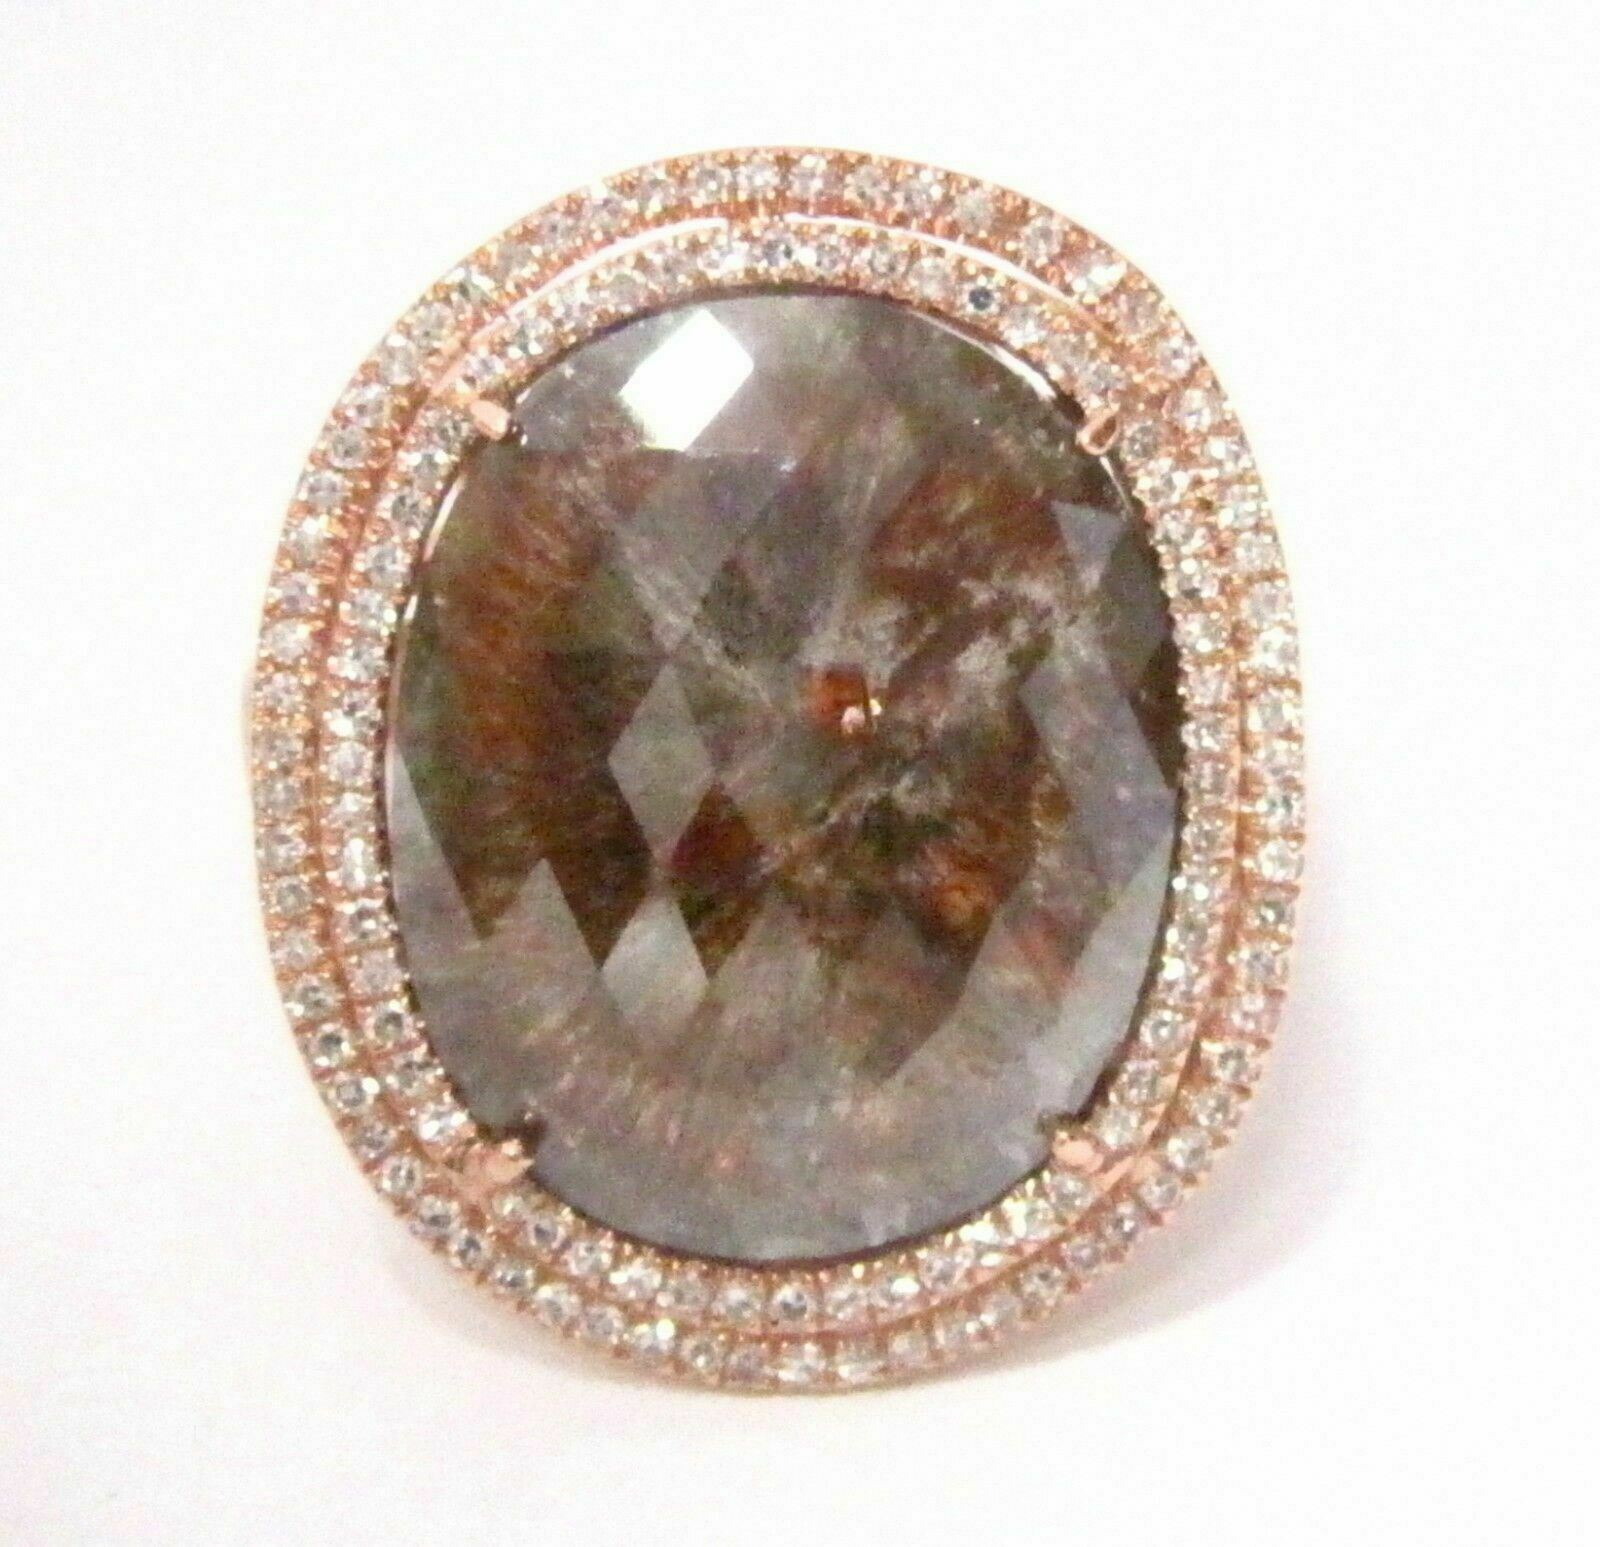 6.14 TCW Oval Brown Diamond w/ Accents Cocktail Ring Size 6.5 14k Rose Gold